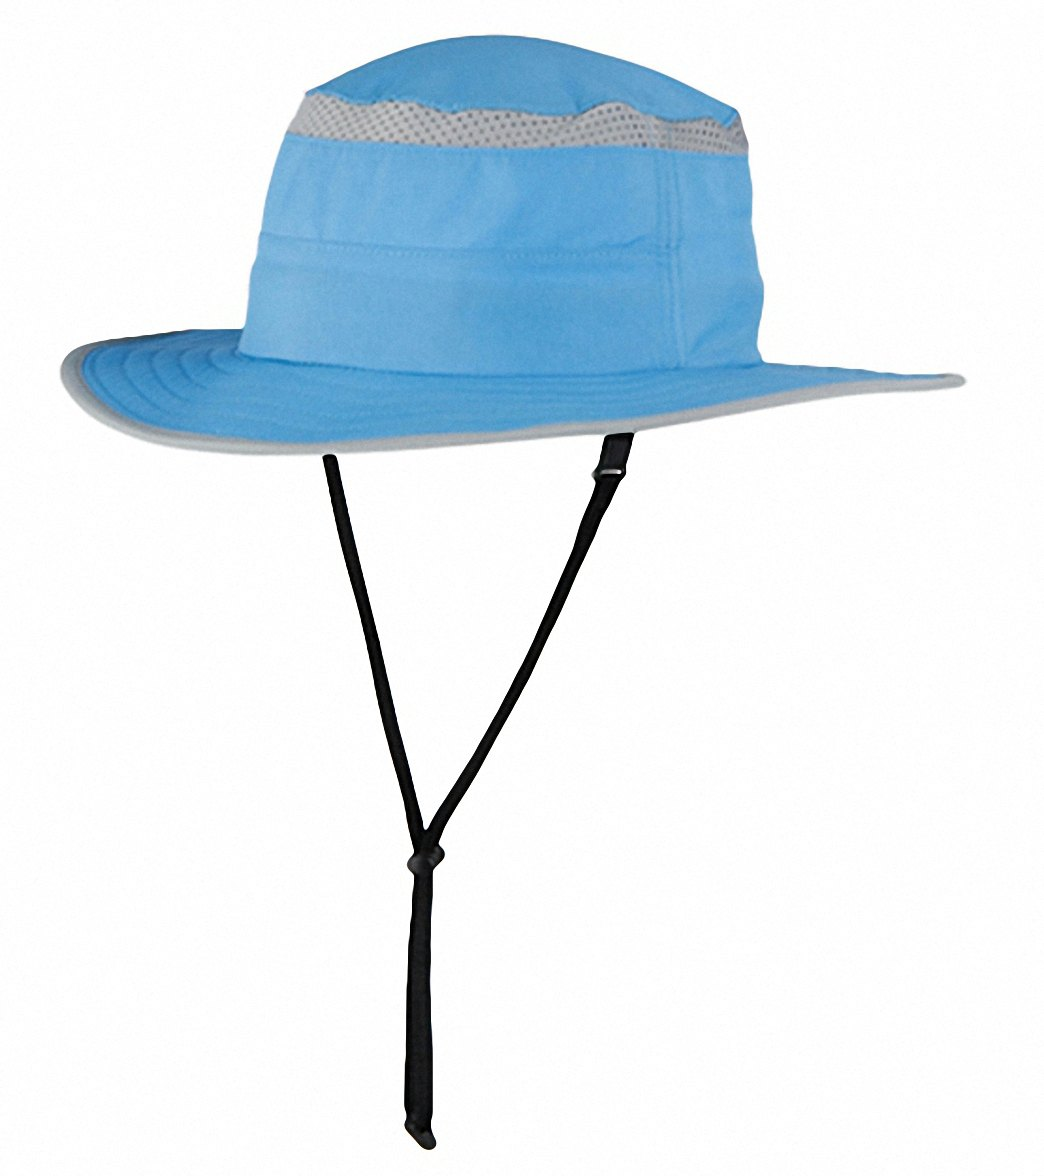 3de65d7748bc8 Sunday Afternoons Kids  Cruiser Hat (Unisex) at SwimOutlet.com